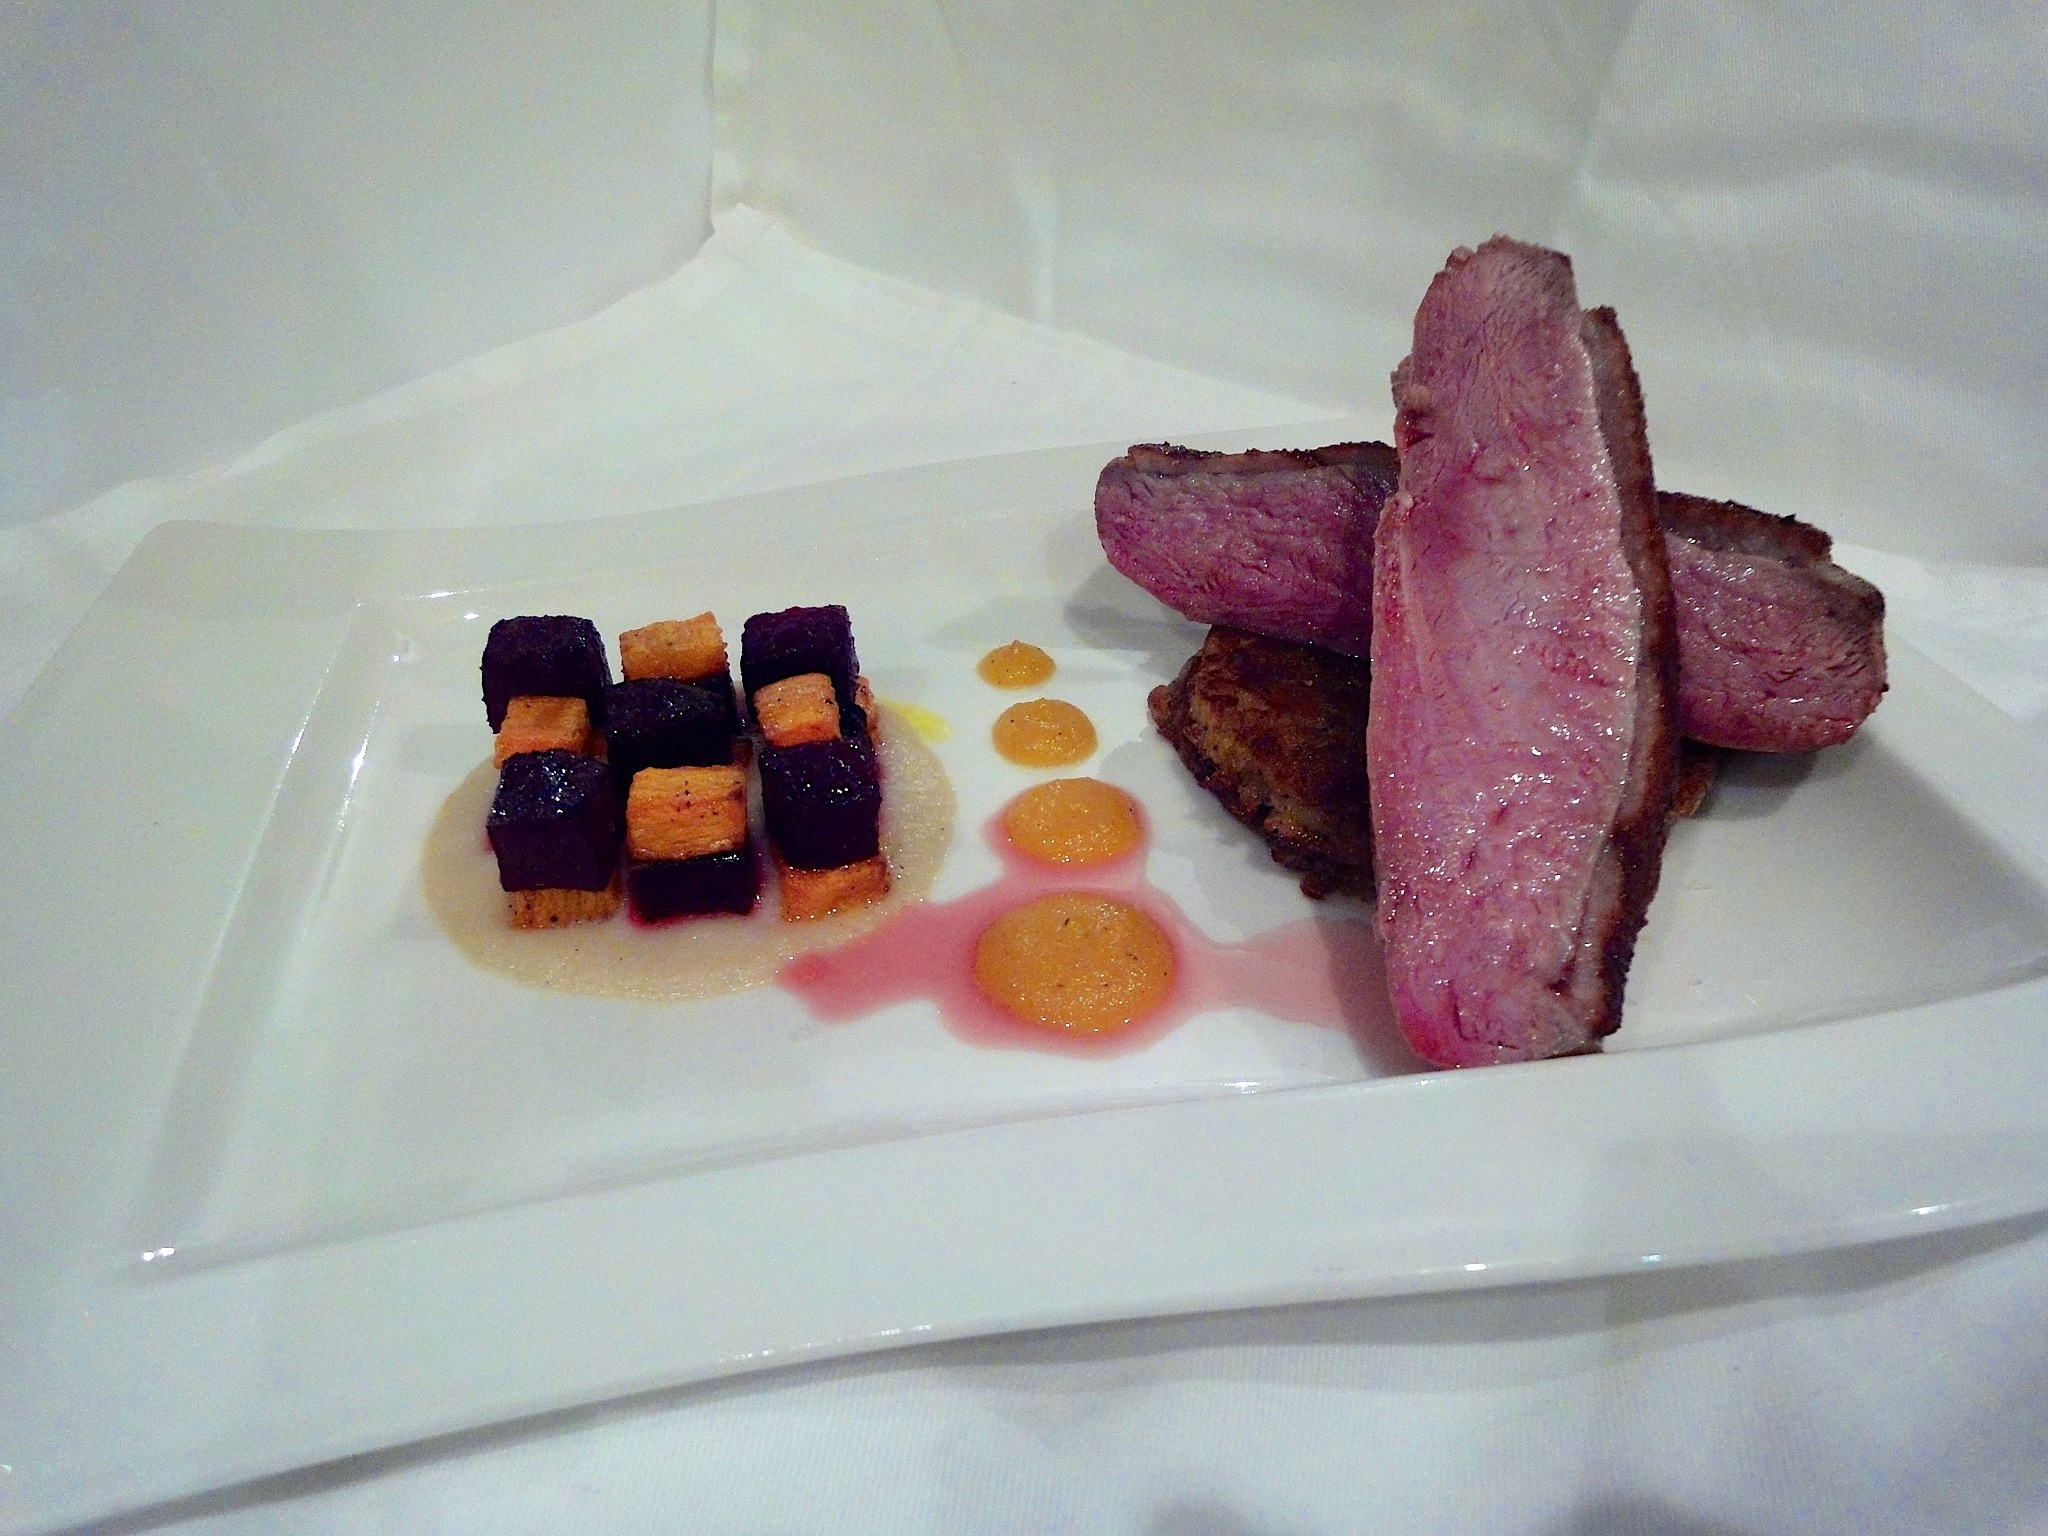 Roast Duck with a Spiced Apricot Compote.